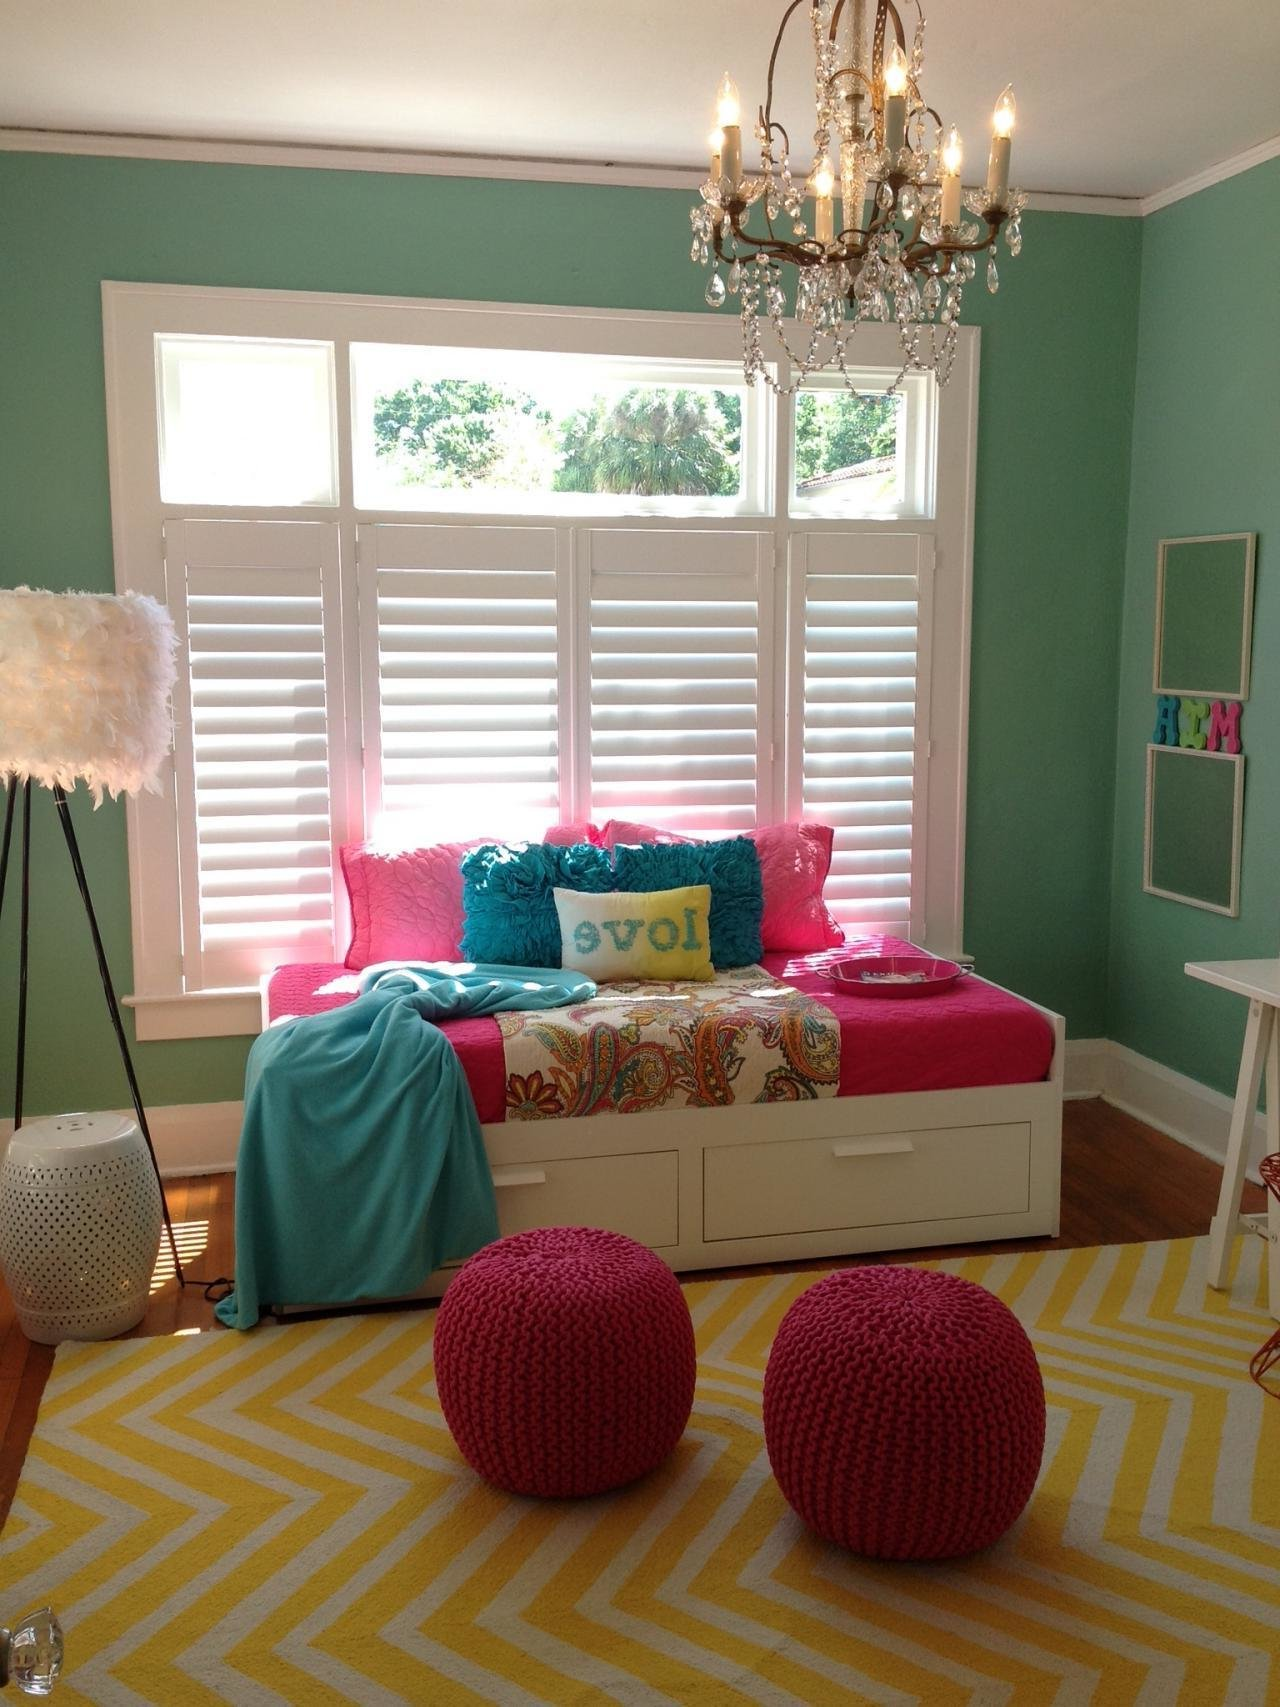 Best 36 Sample Living Room Paint Colors Yellow Living Room Benjamin Moores 343 Sunrays And A New With Pictures